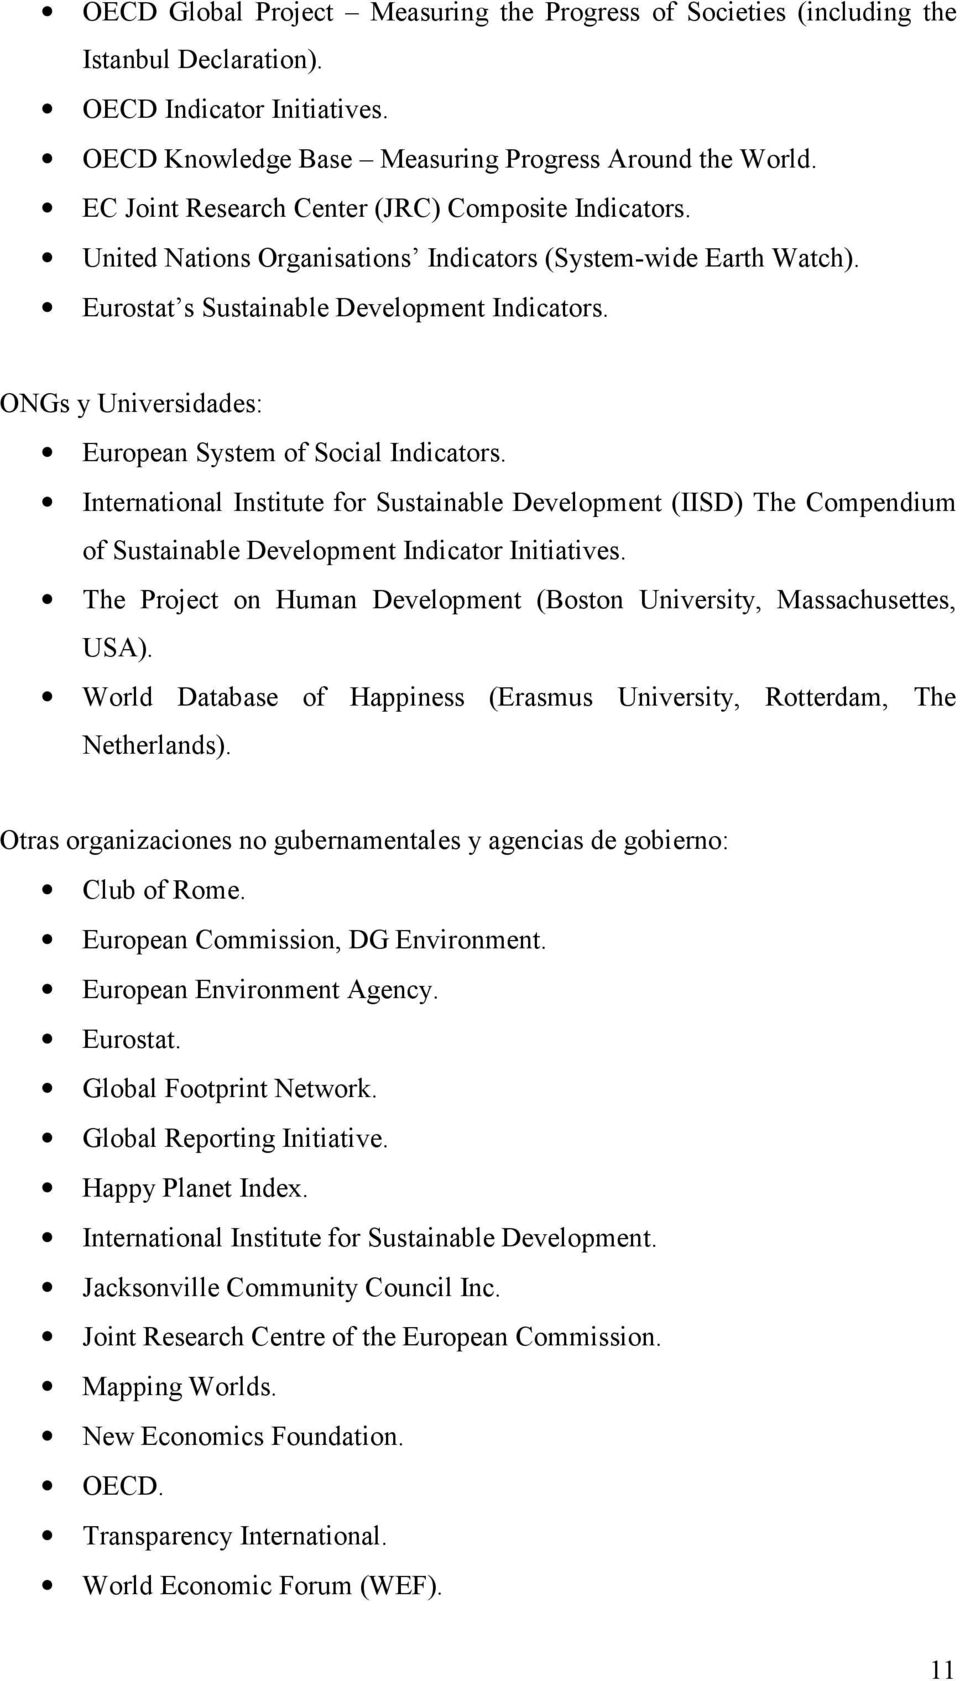 ONGs y Universidades: European System of Social Indicators. International Institute for Sustainable Development (IISD) The Compendium of Sustainable Development Indicator Initiatives.